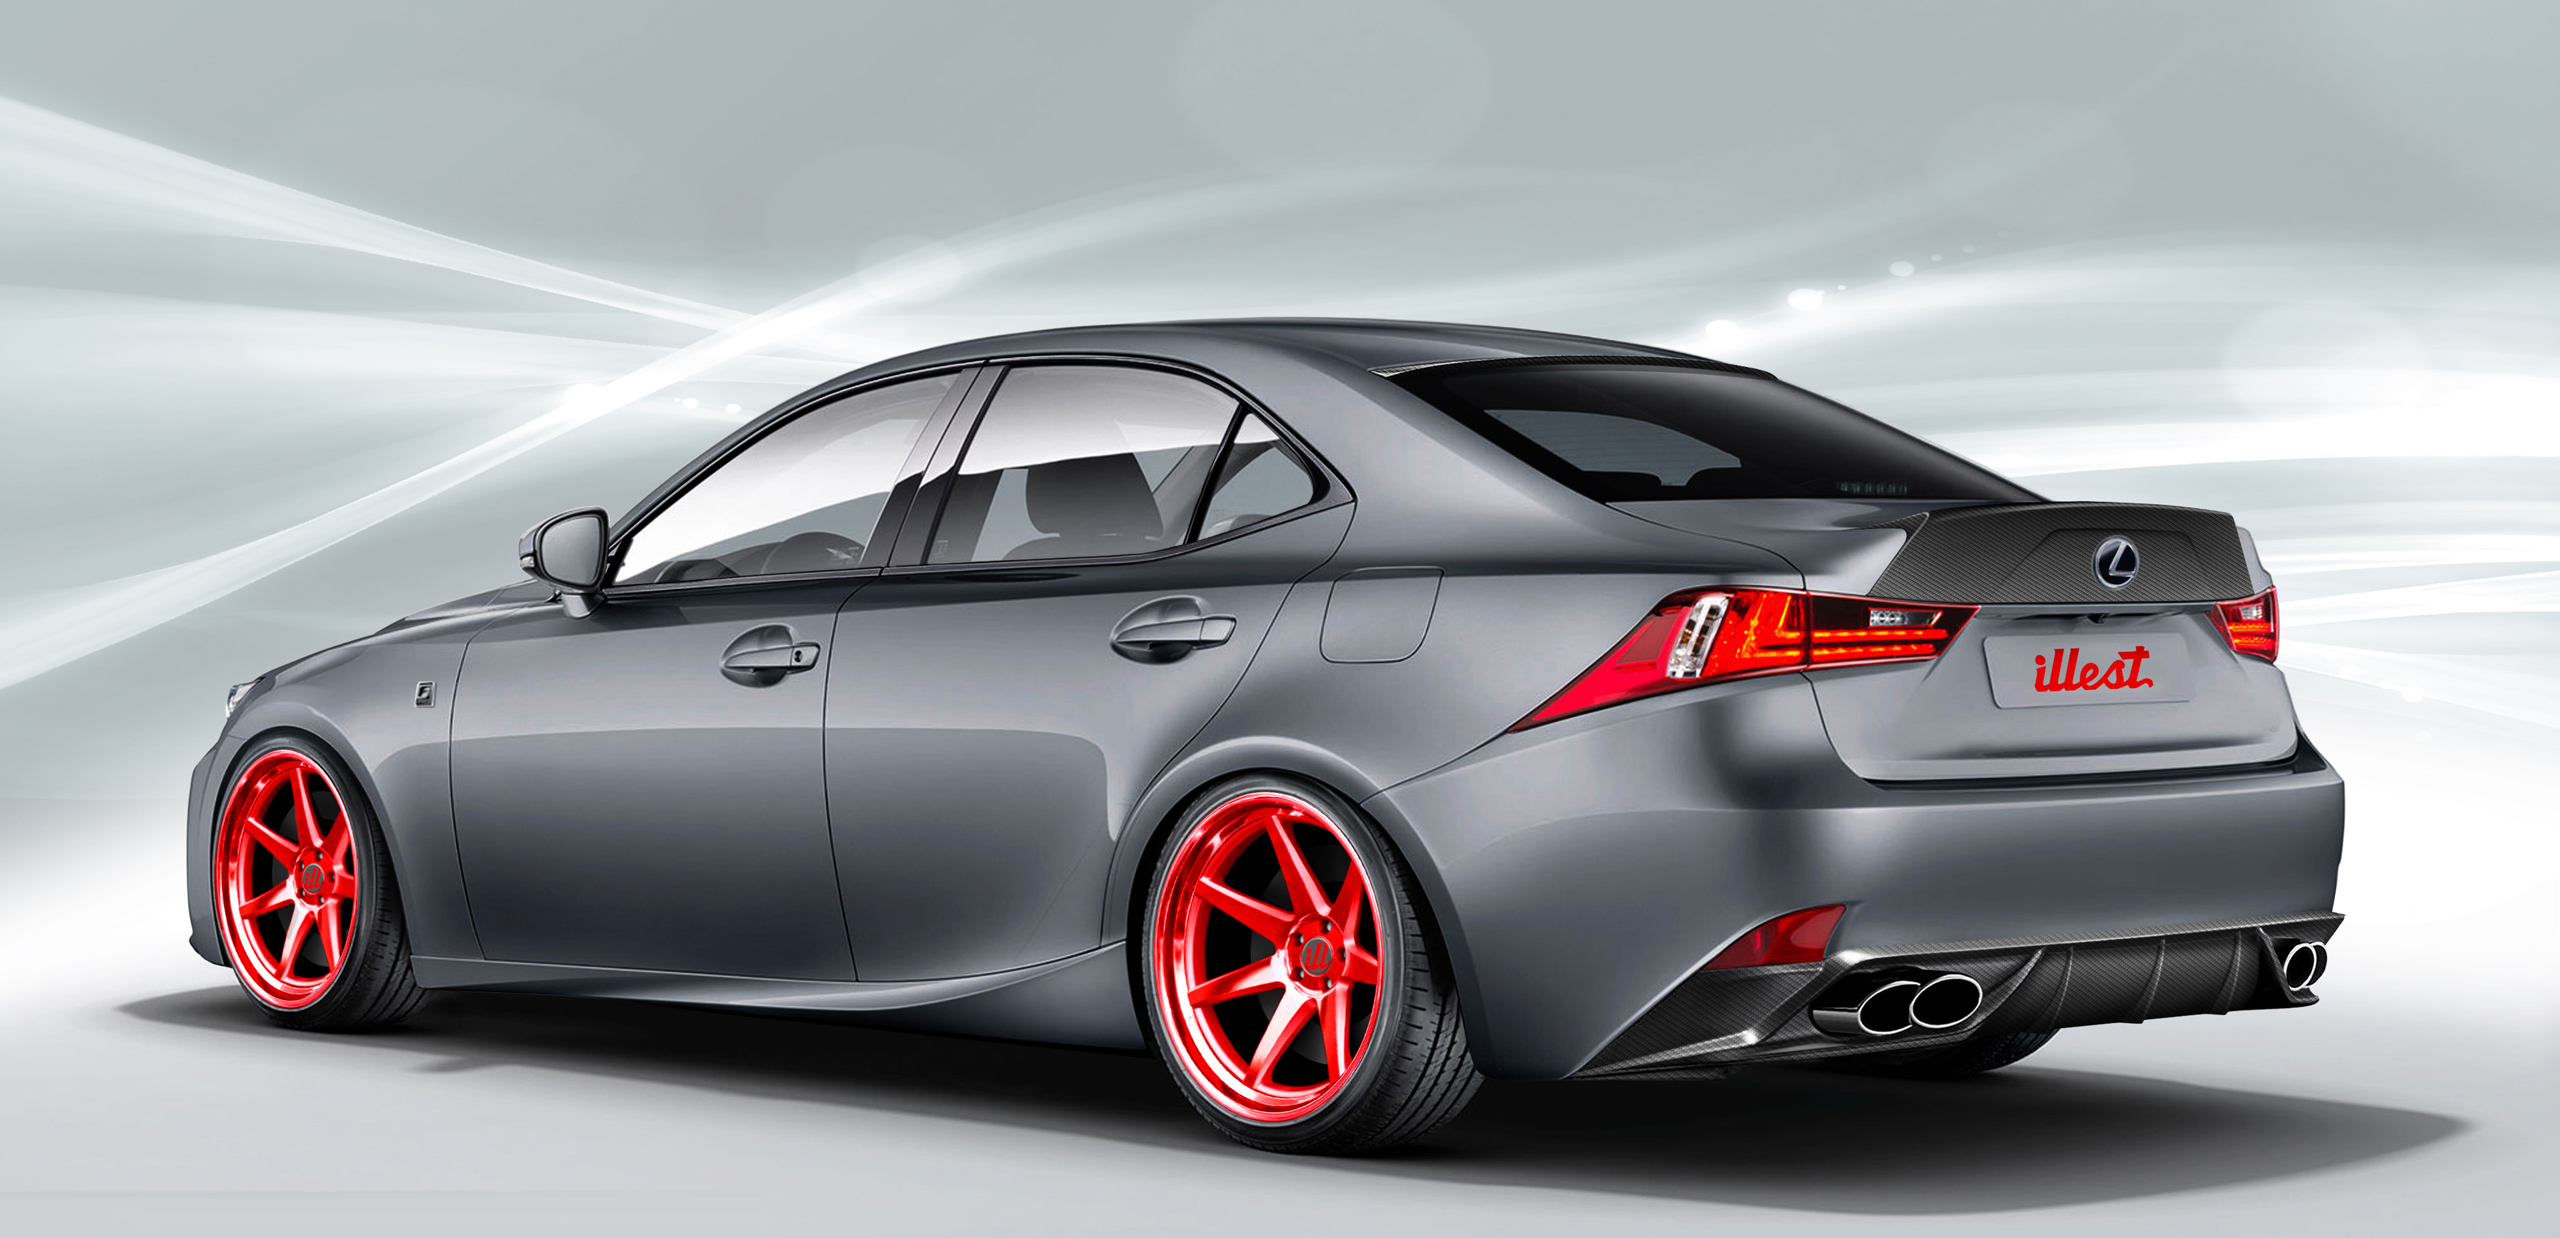 best rc wing with Illest Clothing Brand Creates Lexus Is F Sport Body Kit on Gpma1300 besides 437608 additionally Zmx5aW5nIHdpbmcgZGVzaWdu likewise 32590019192 in addition Boeing B 797 Flying Wing Super Liner.